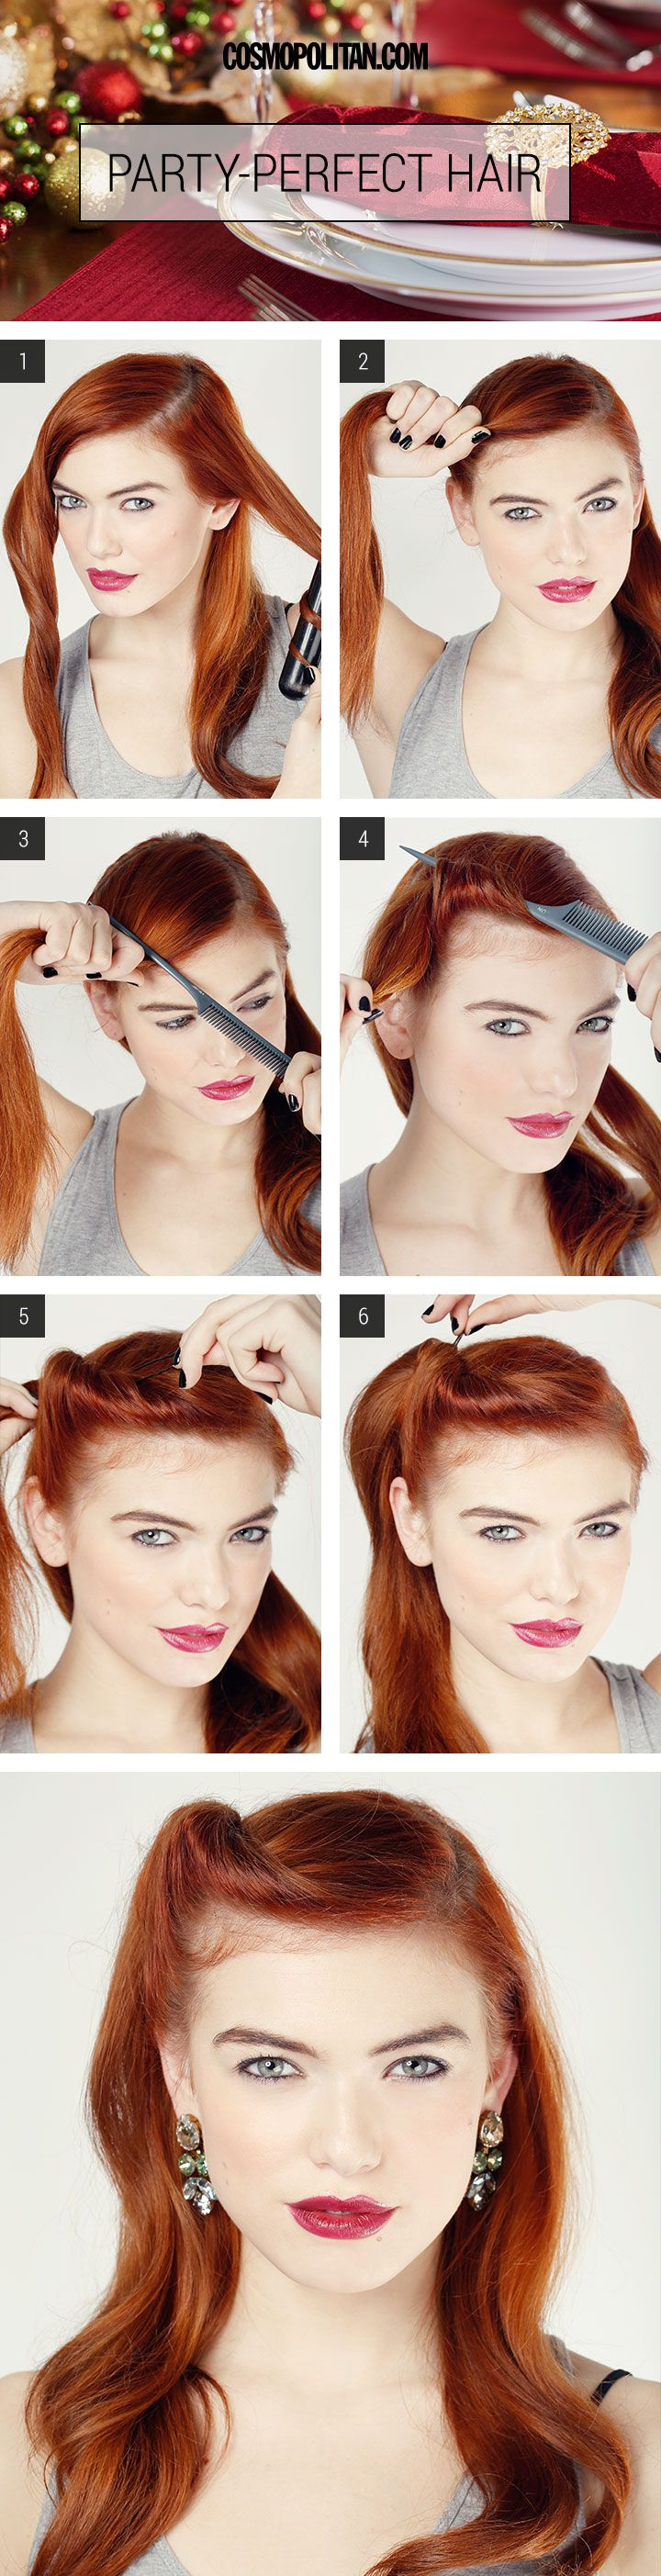 Hair How-To: Party-Perfect Glam Roll